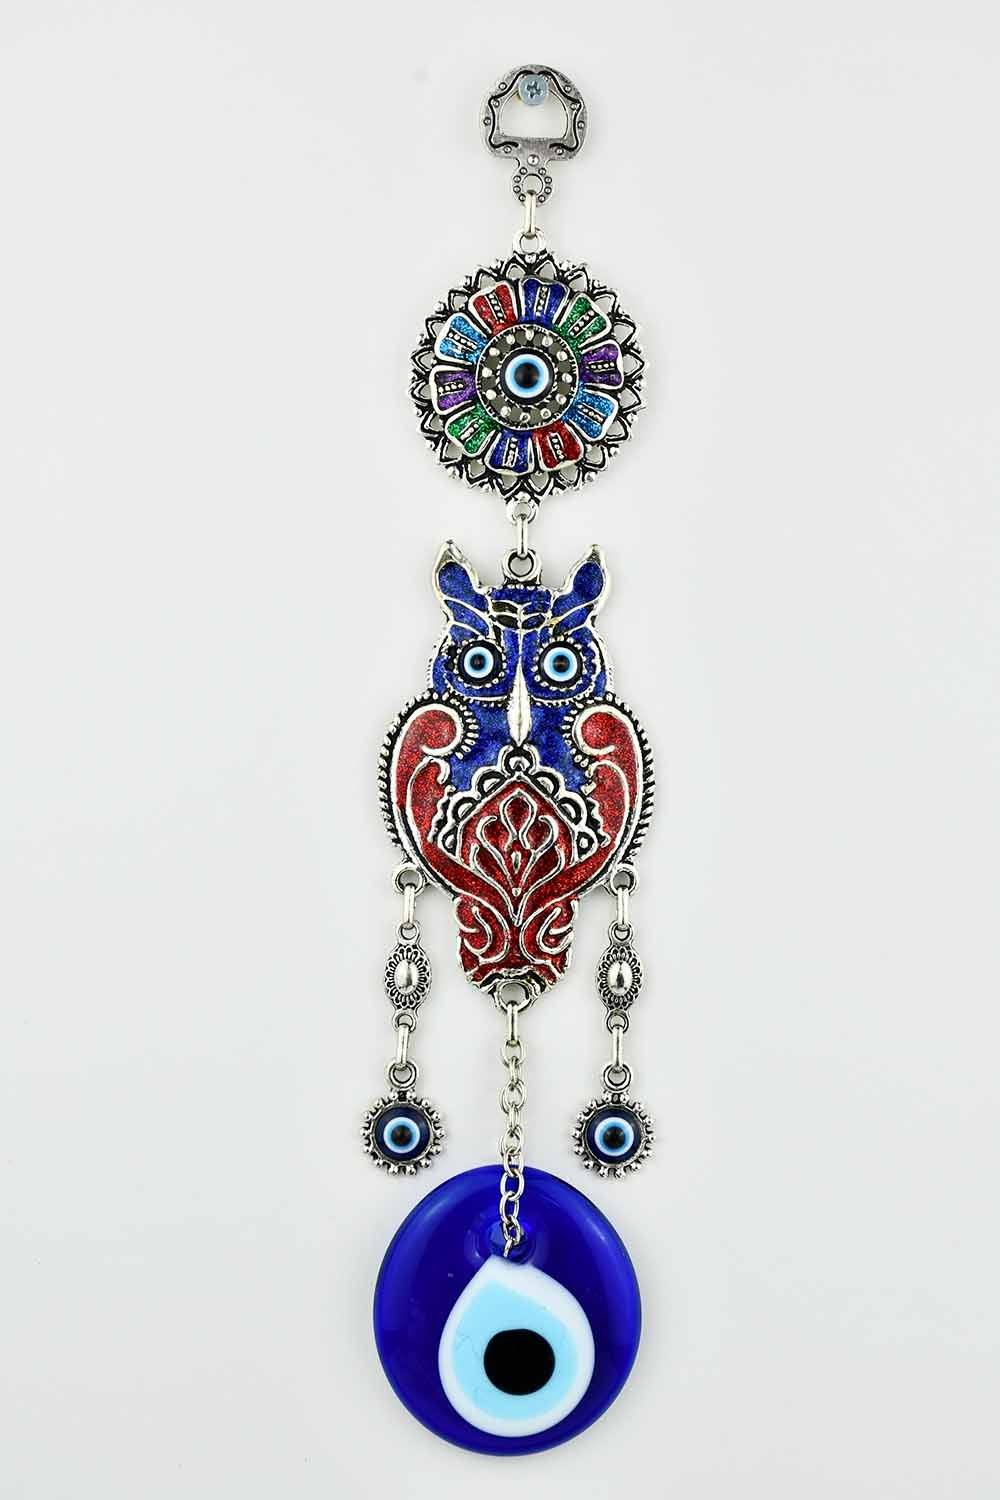 Evil Eye Ornament Owl Design Medium #8 Evil Eye Sydney Grand Bazaar